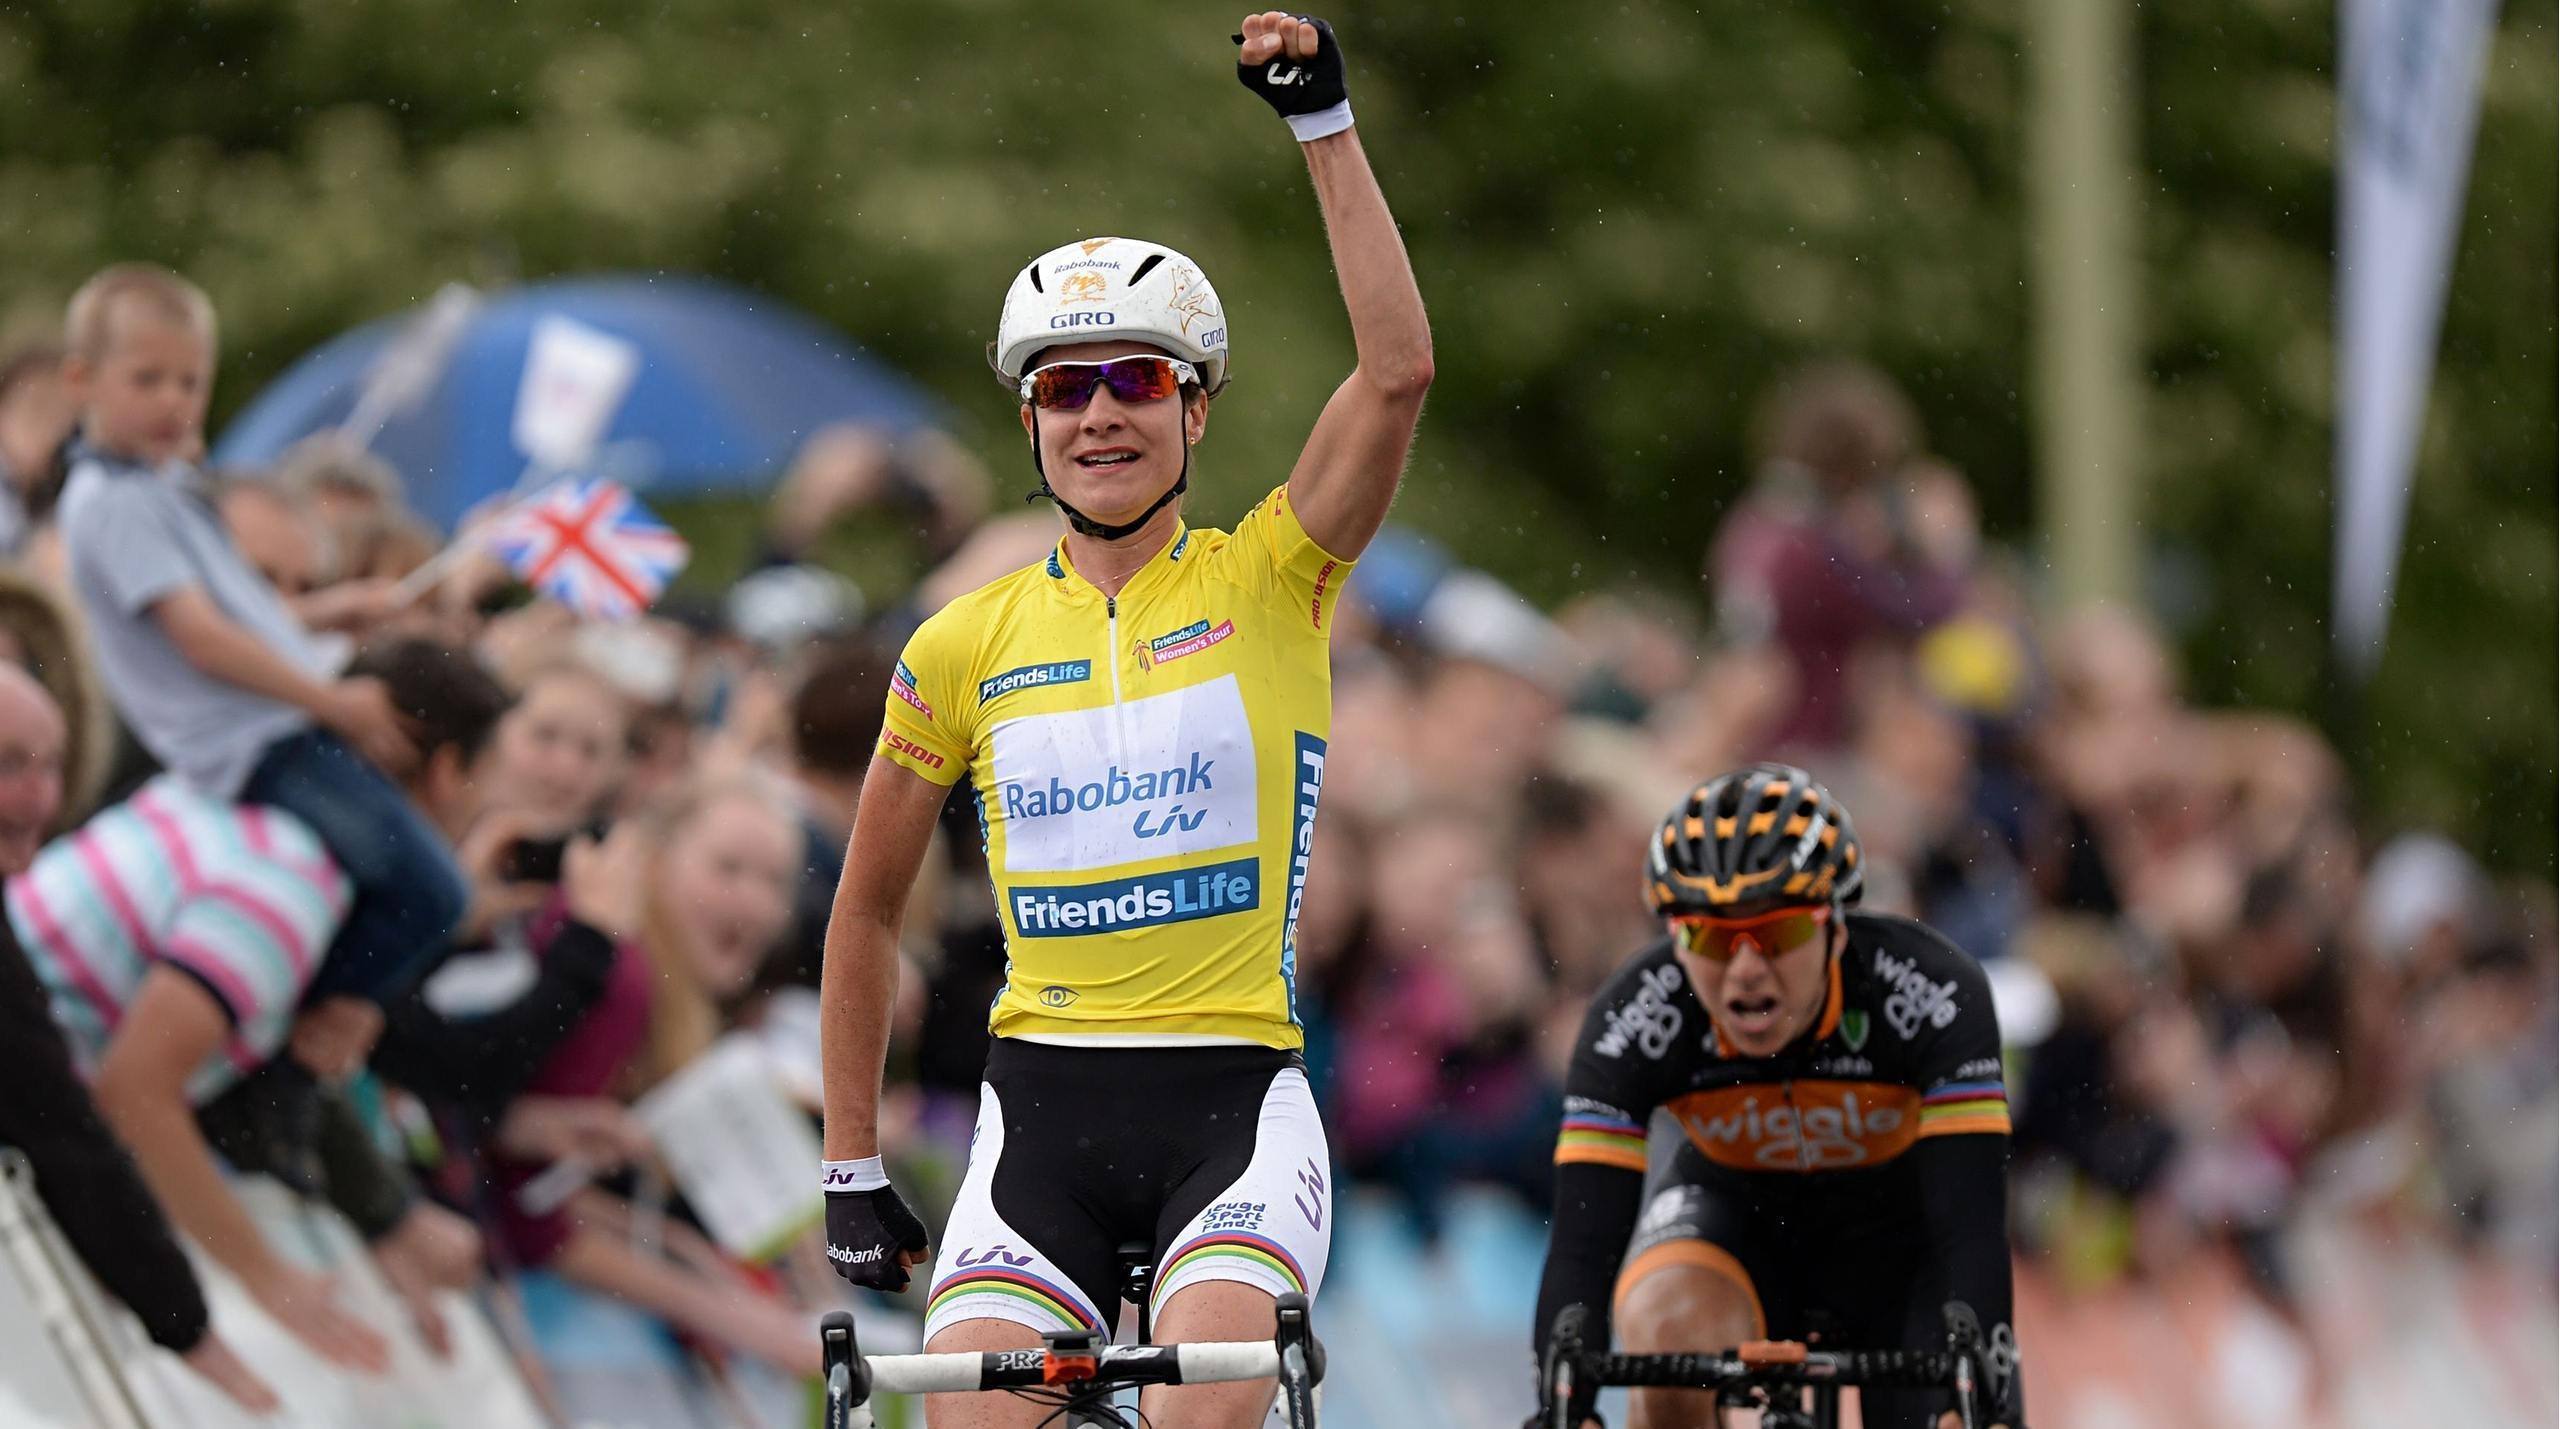 Marianne Vos crosses the finish line to win stage four of the Women's Tour in Welwyn Garden City.